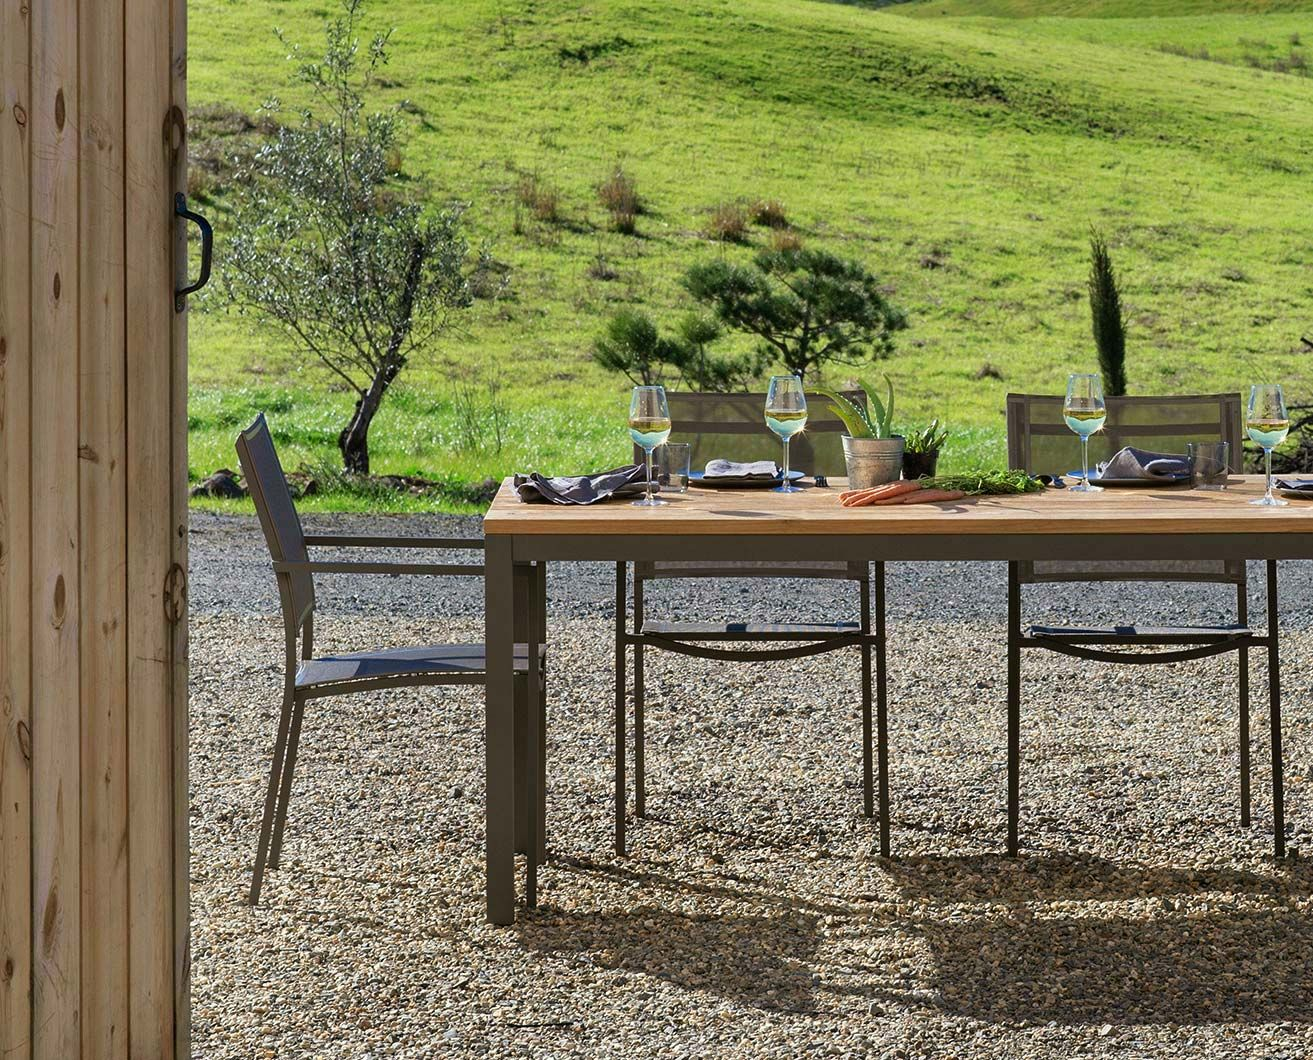 Sila Rectangular Table From Scandinavian Designs Our Rustic Chic Dining Features An Fsc Reclaimed Teak Top With Frosted Taupe Aluminum